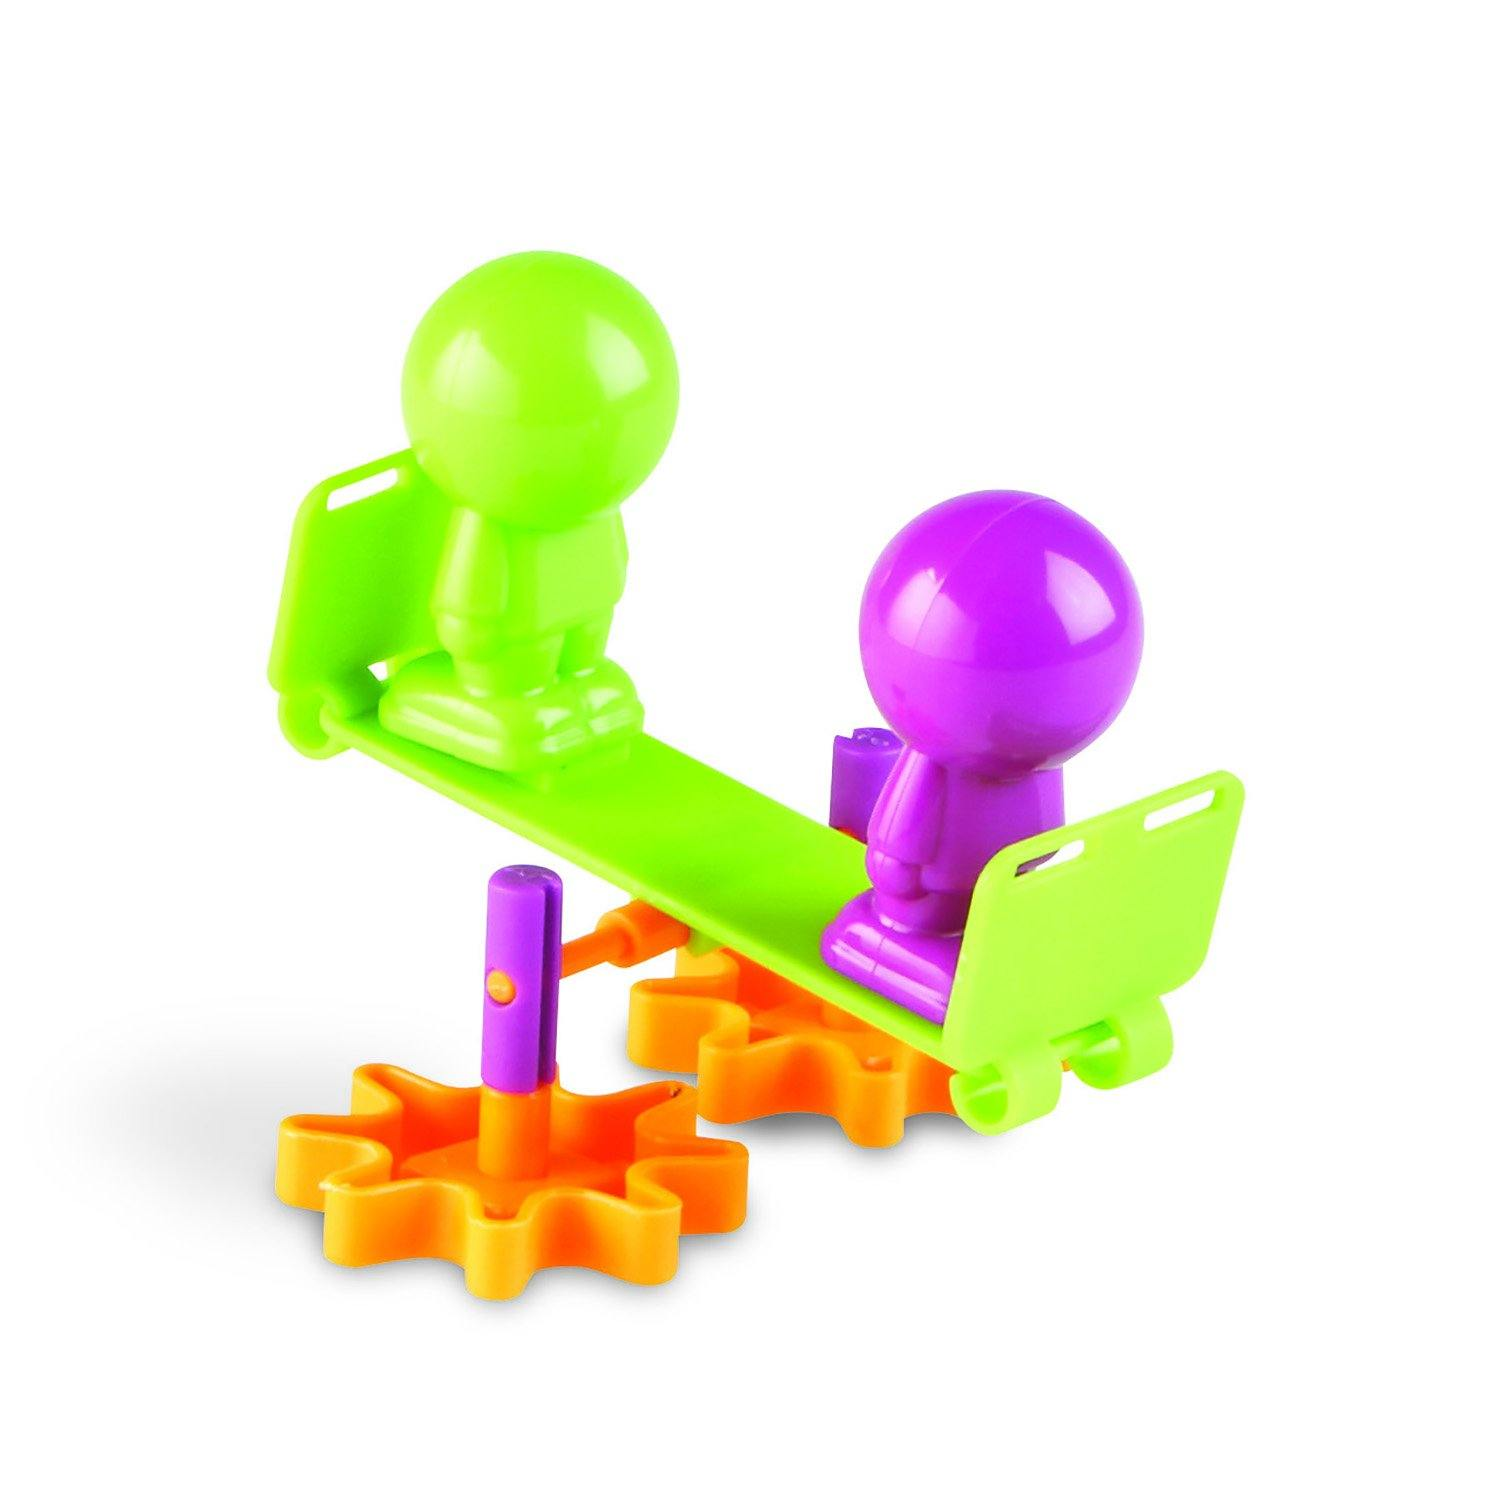 Toy seesaw set